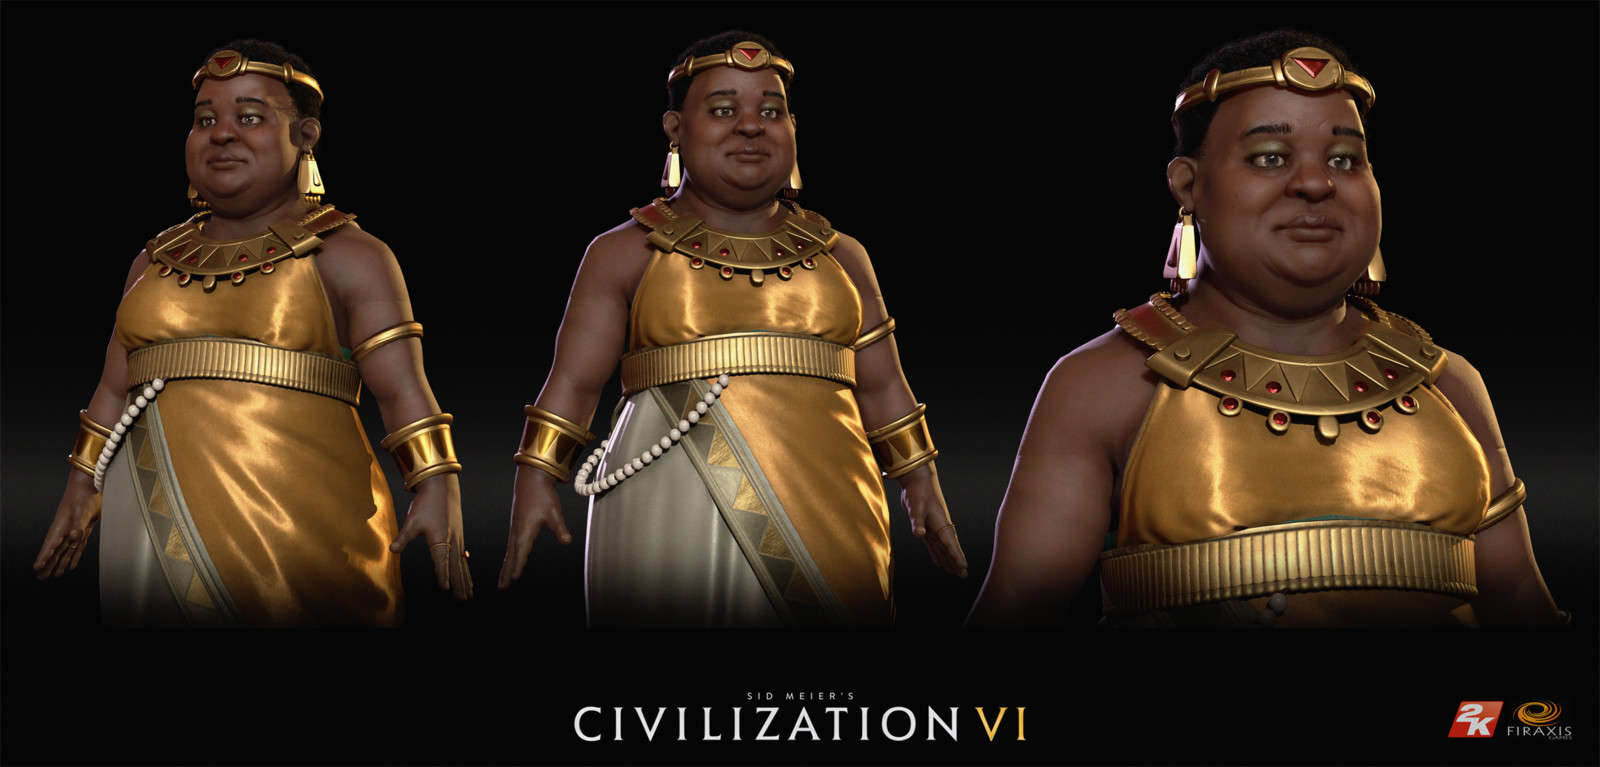 Civilization VI: Amanitore of Nubia